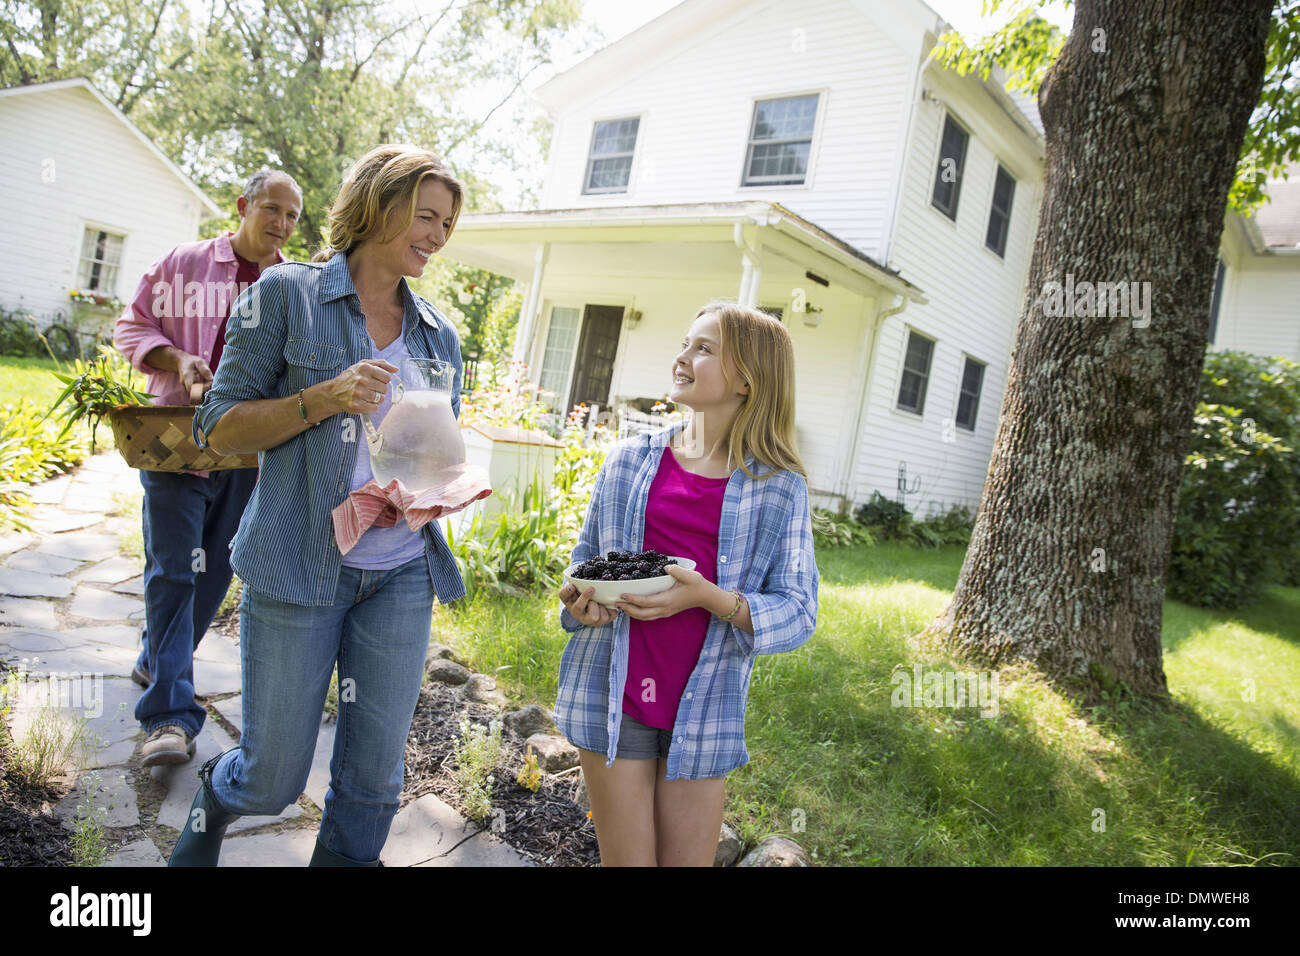 A family summer garing at a farm. Two adults and a young girl. Stock Photo